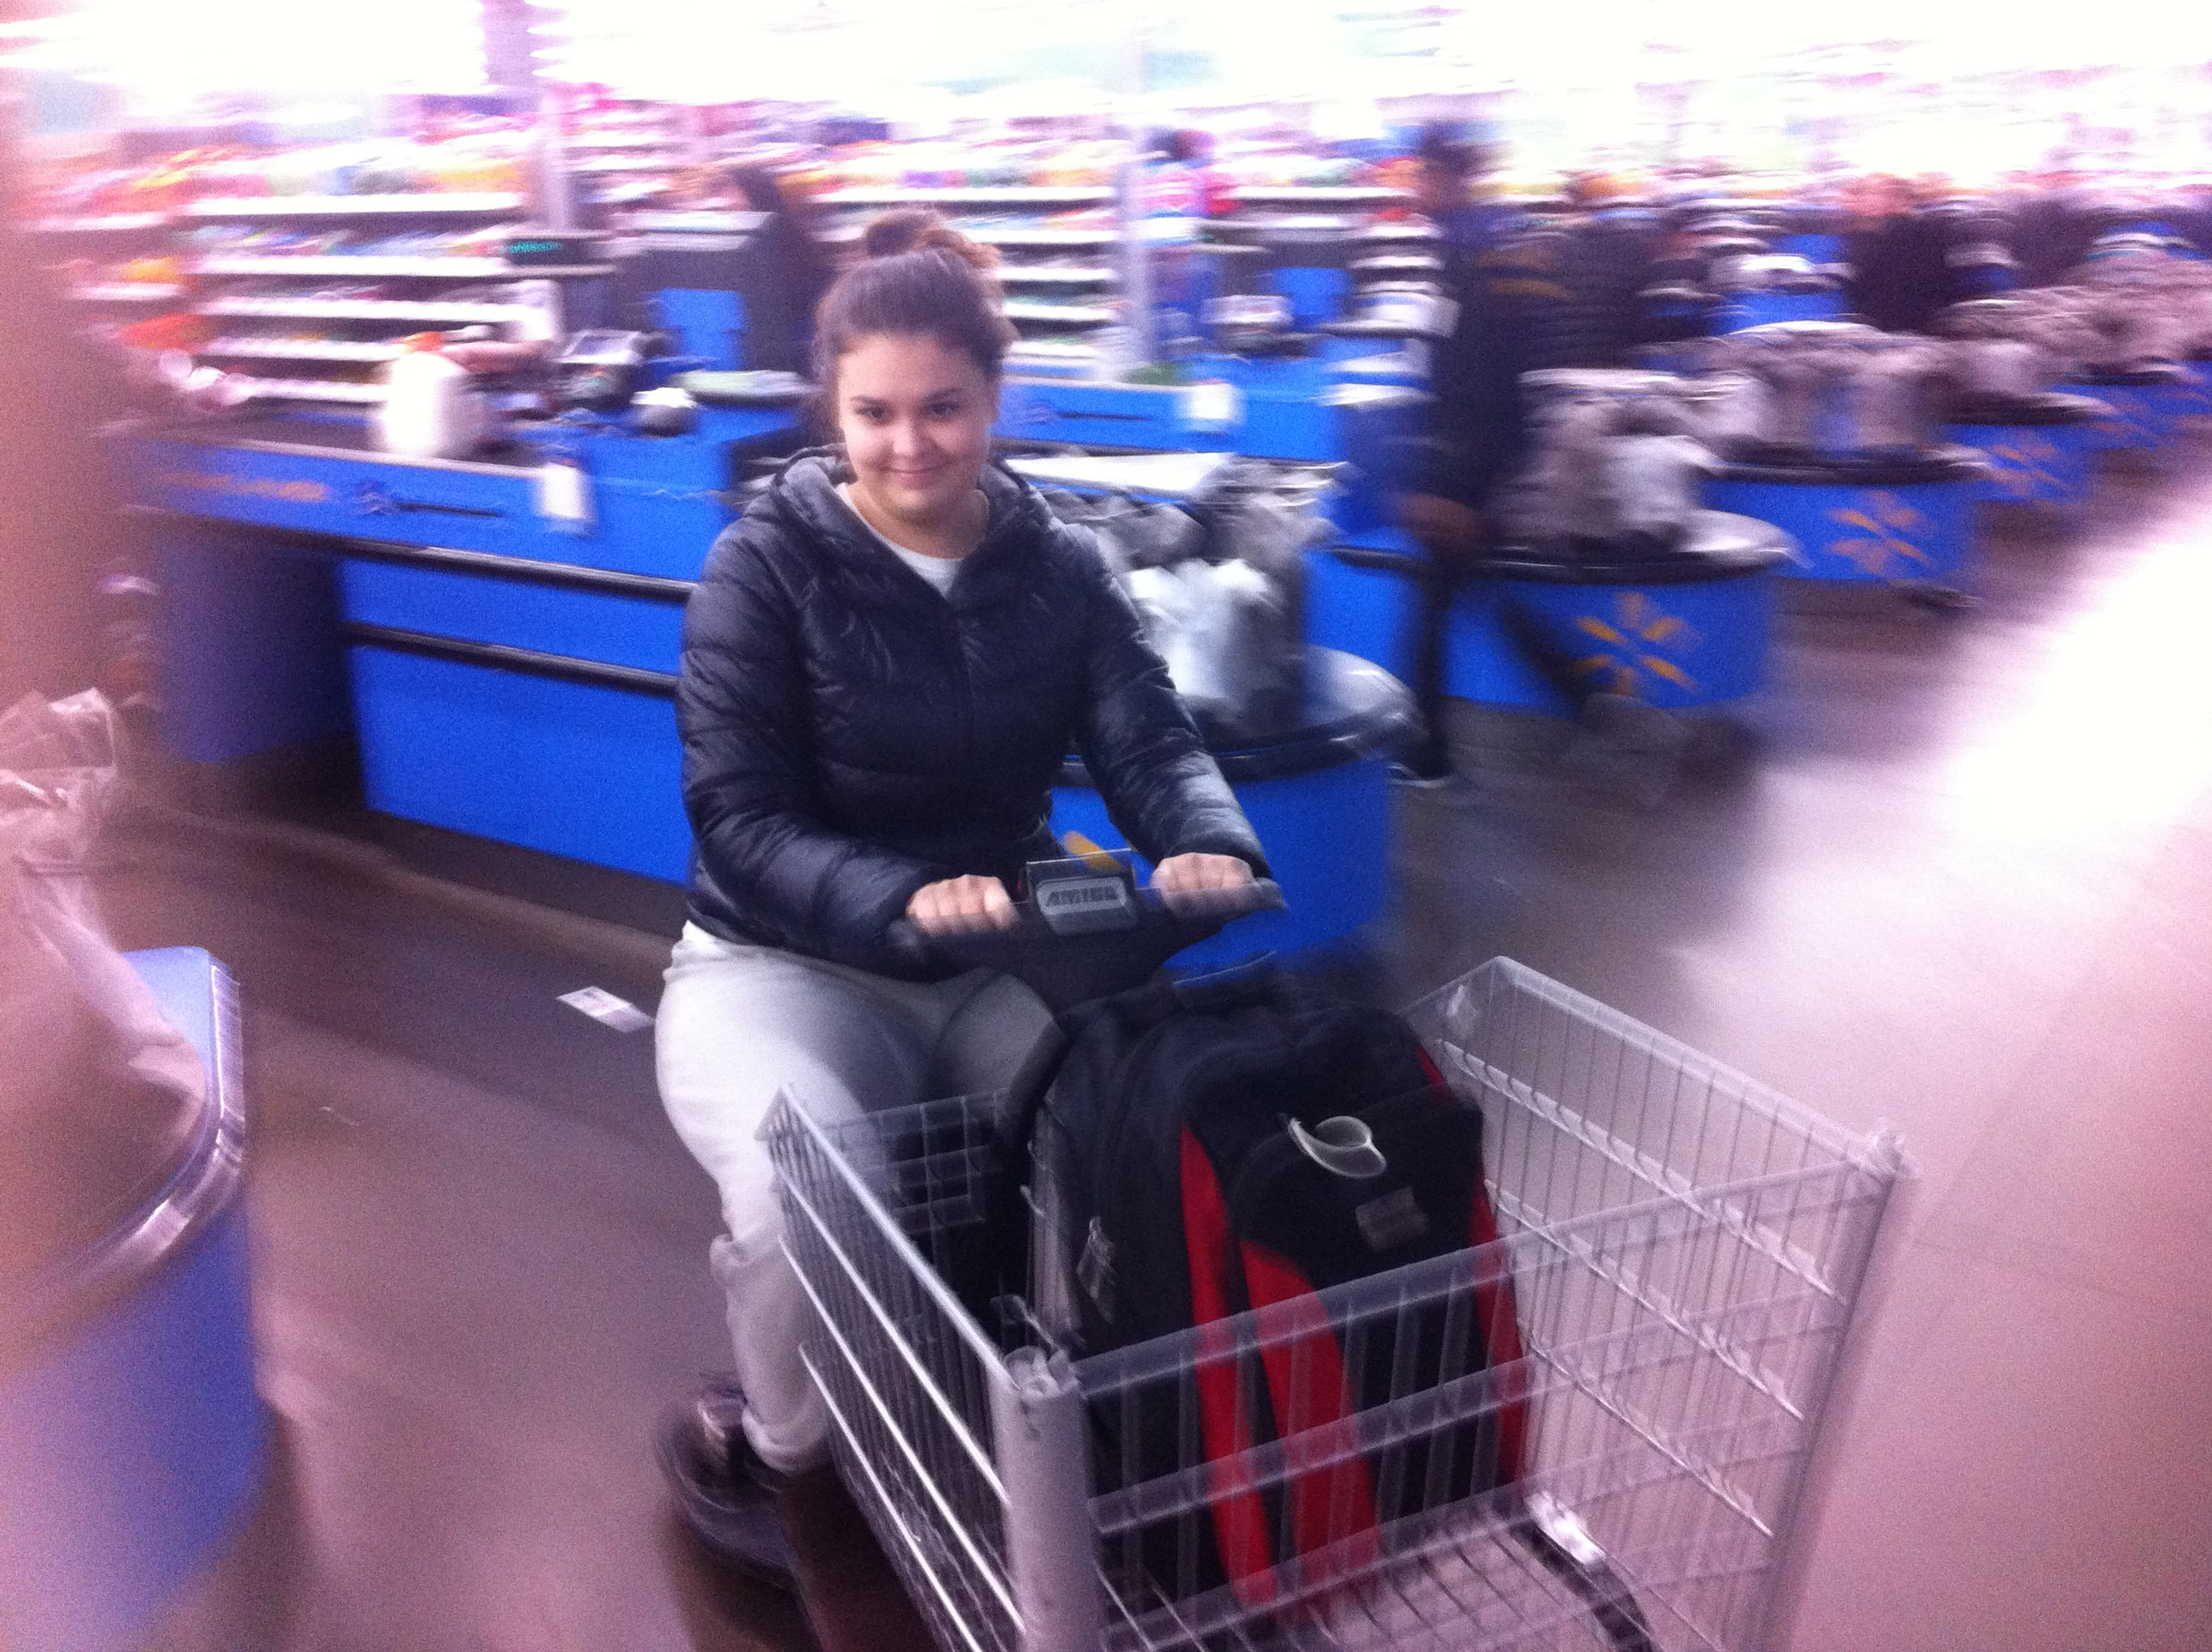 My stepdaughter at Walmart